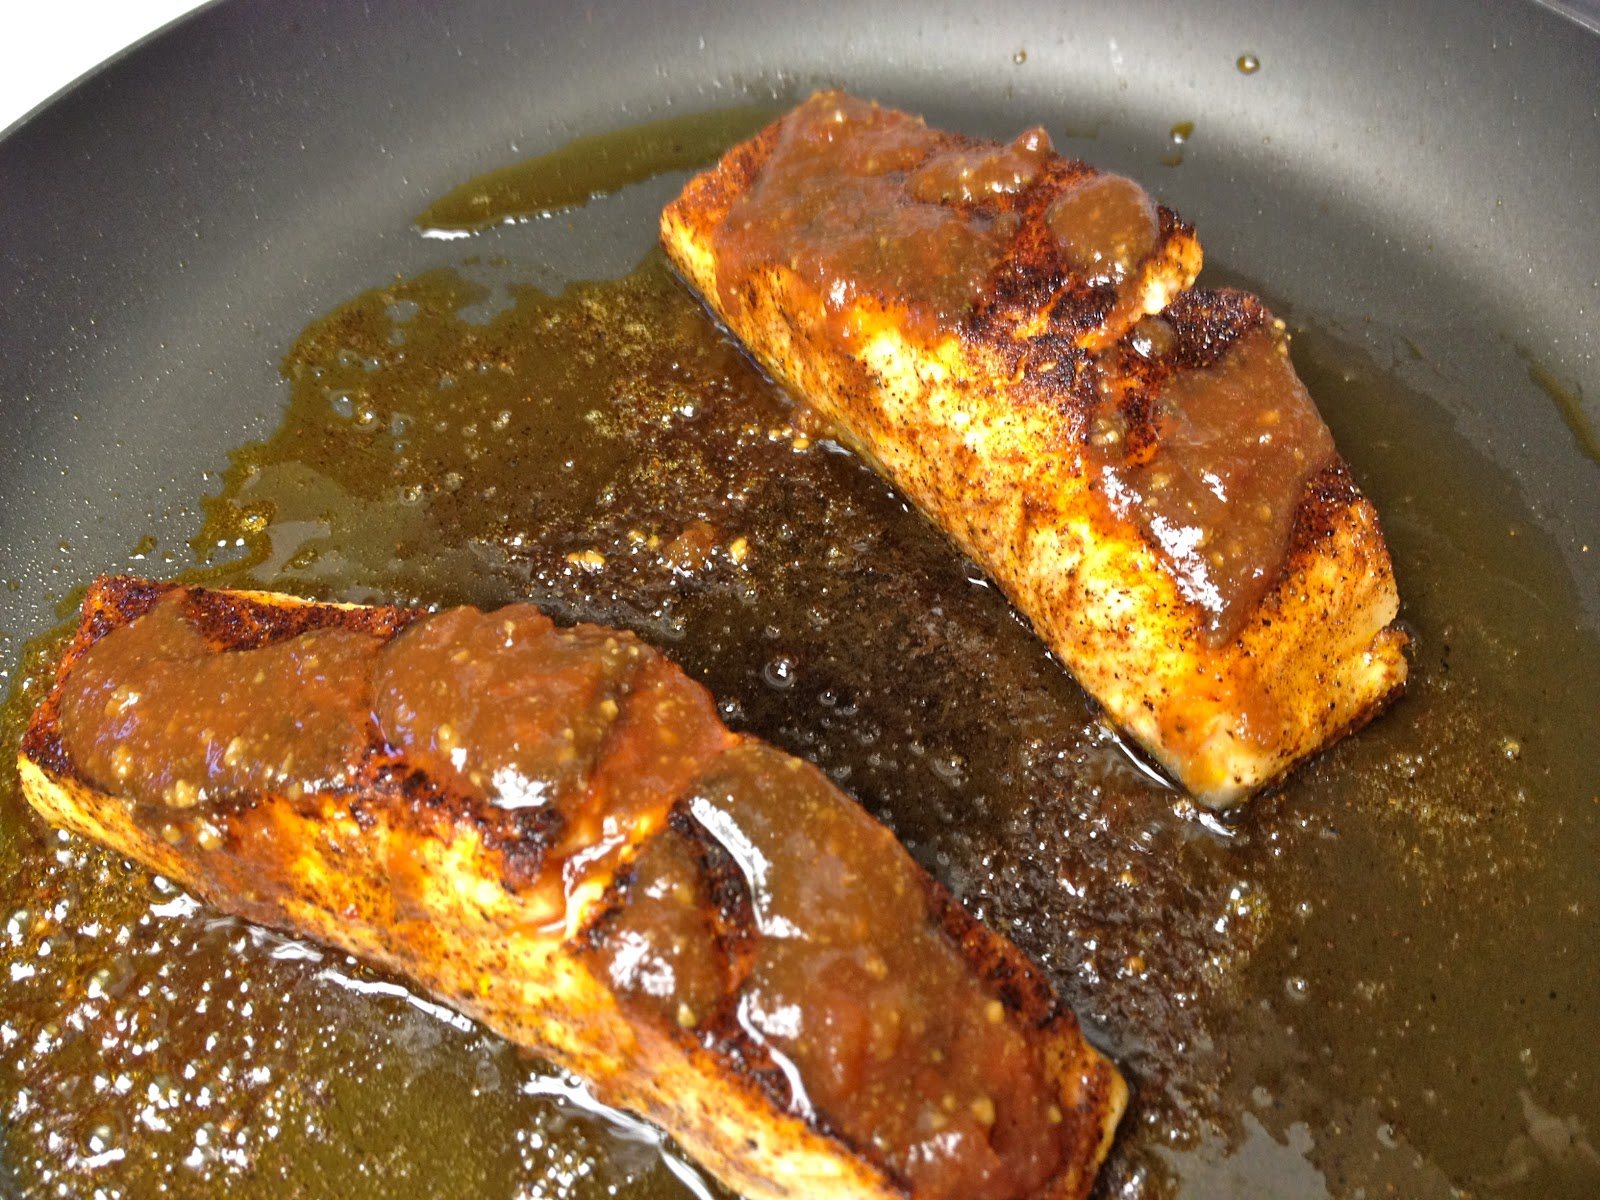 6) Finishing Cooking The Salmon By Placing The Pan In The Preheated Oven  For 5 To 7 Minutes, Or Until Your Desired Doneness Is Reached